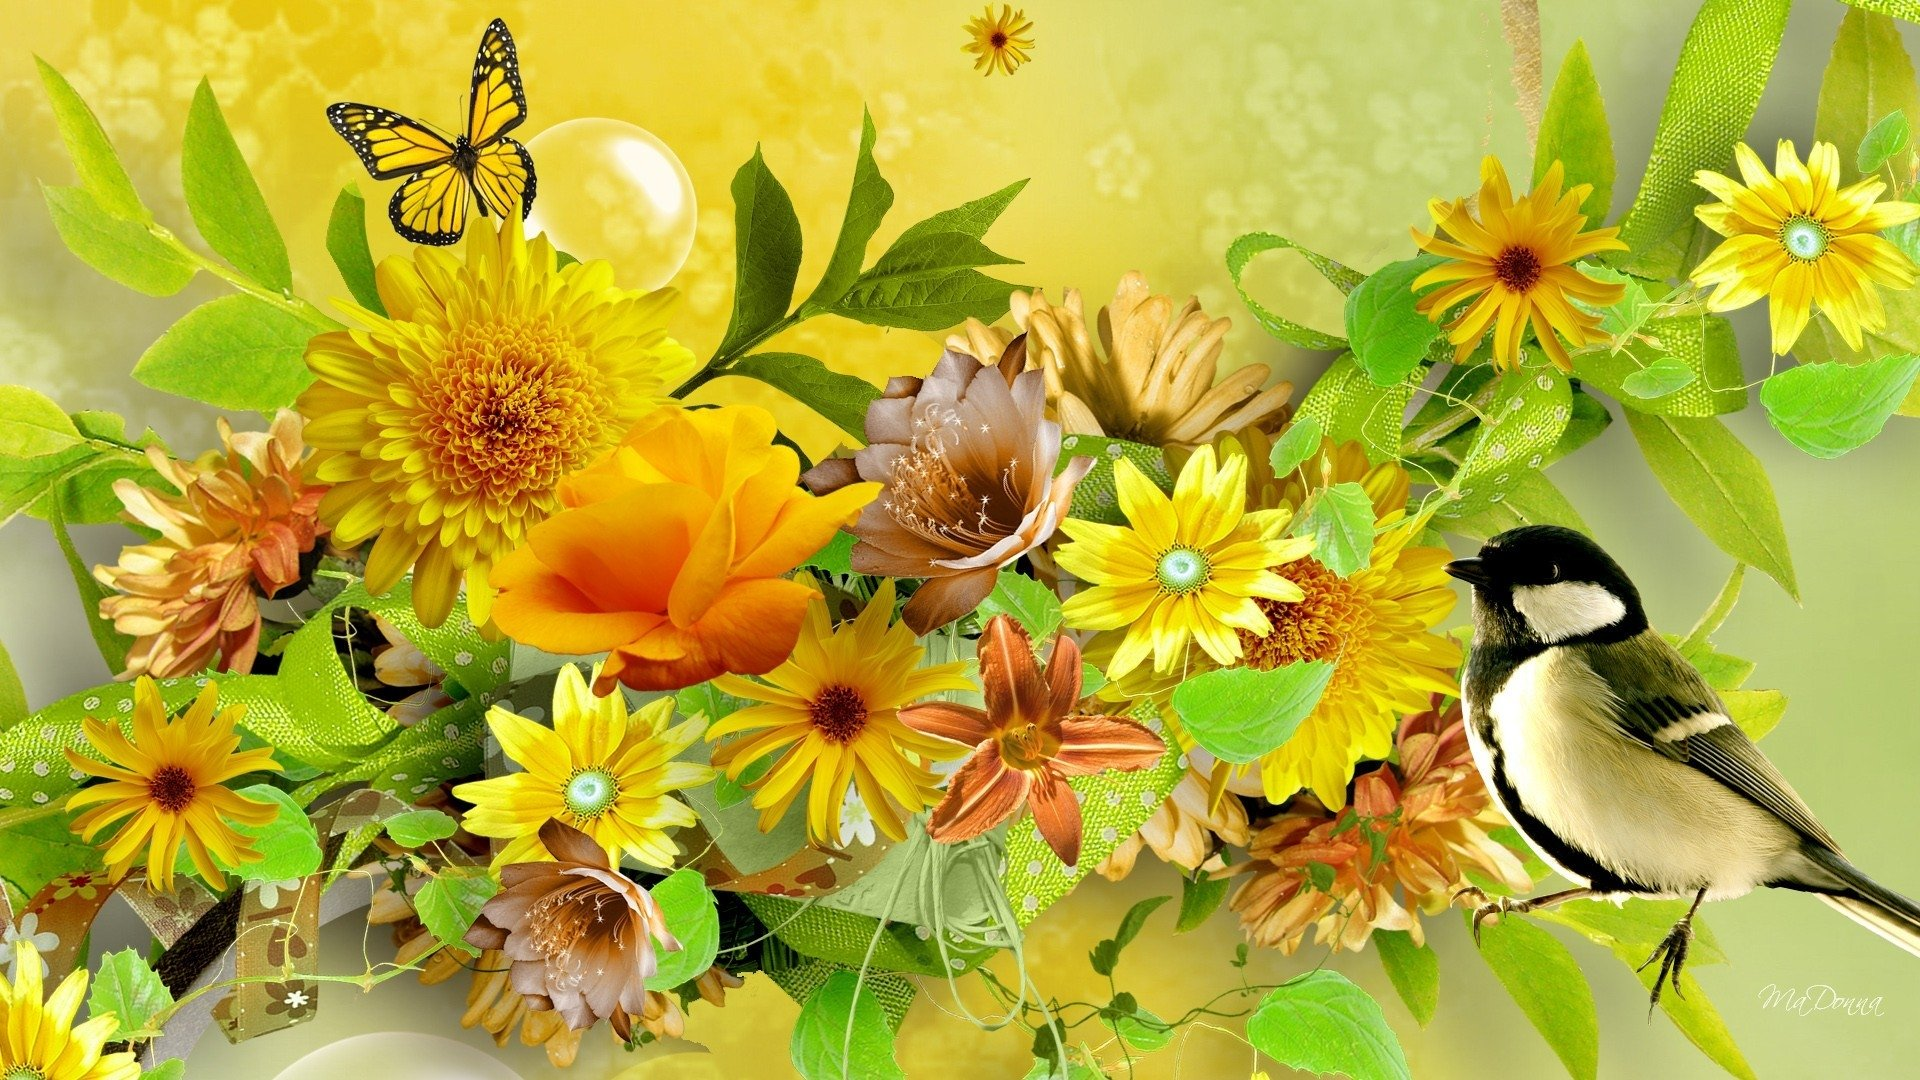 Wallpapers ID:700168